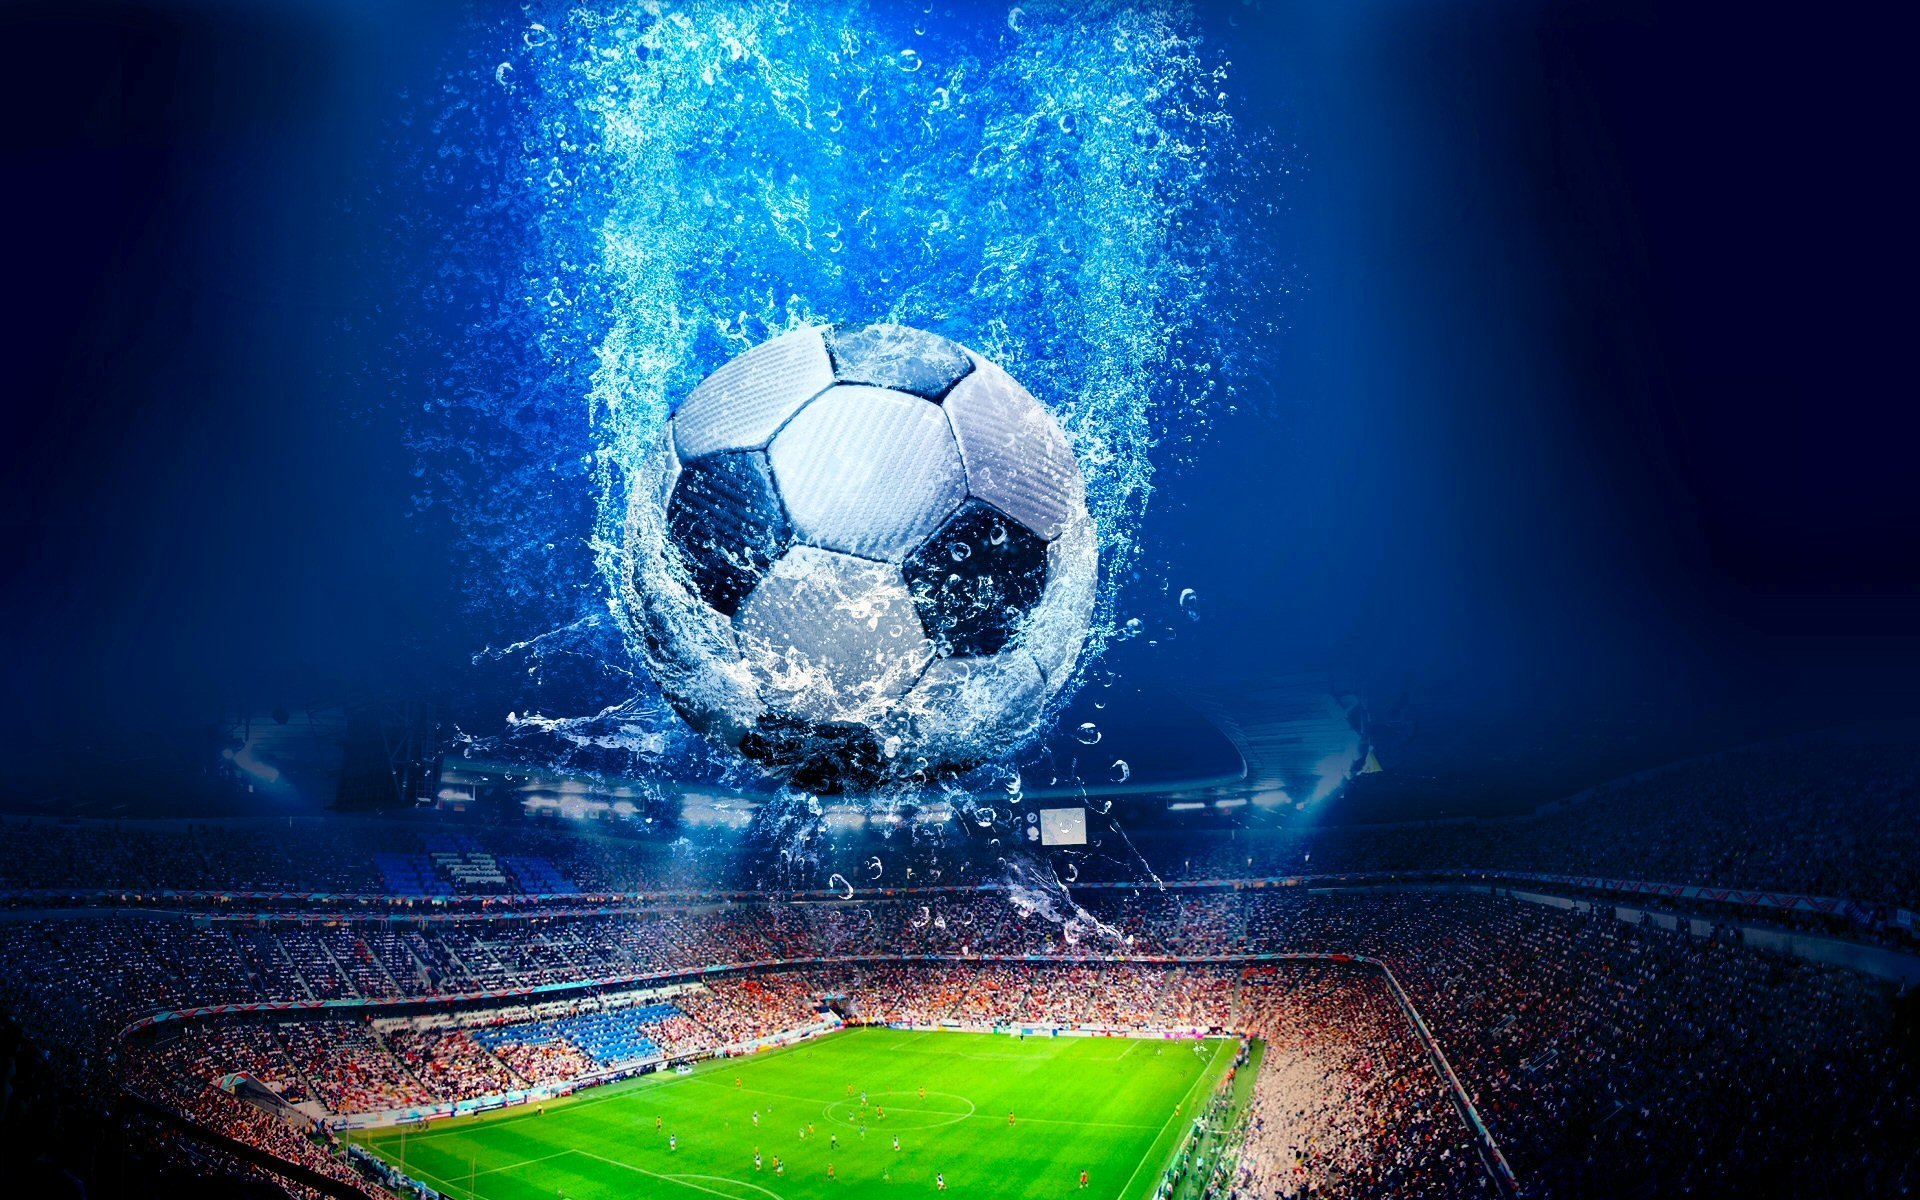 Cool Backgrounds Hd 3d Soccer